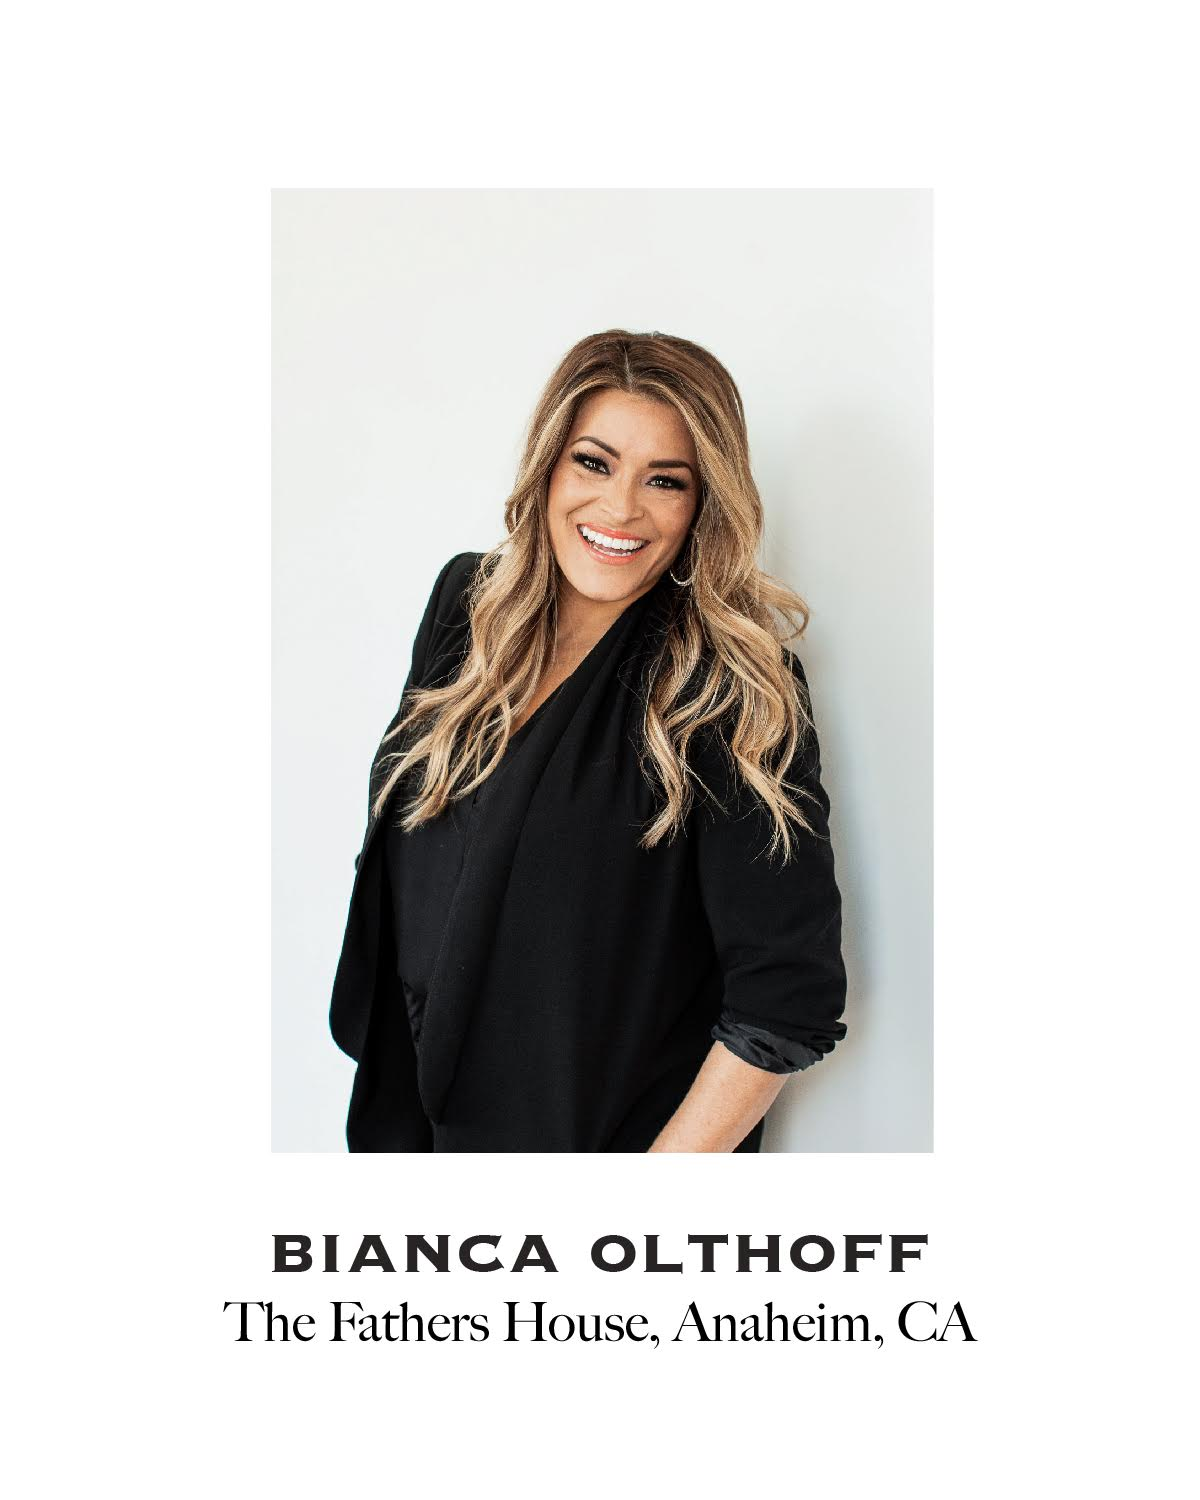 Picture of Bianca Olthoff, Pastor at The Fathers House in Anaheim, California.